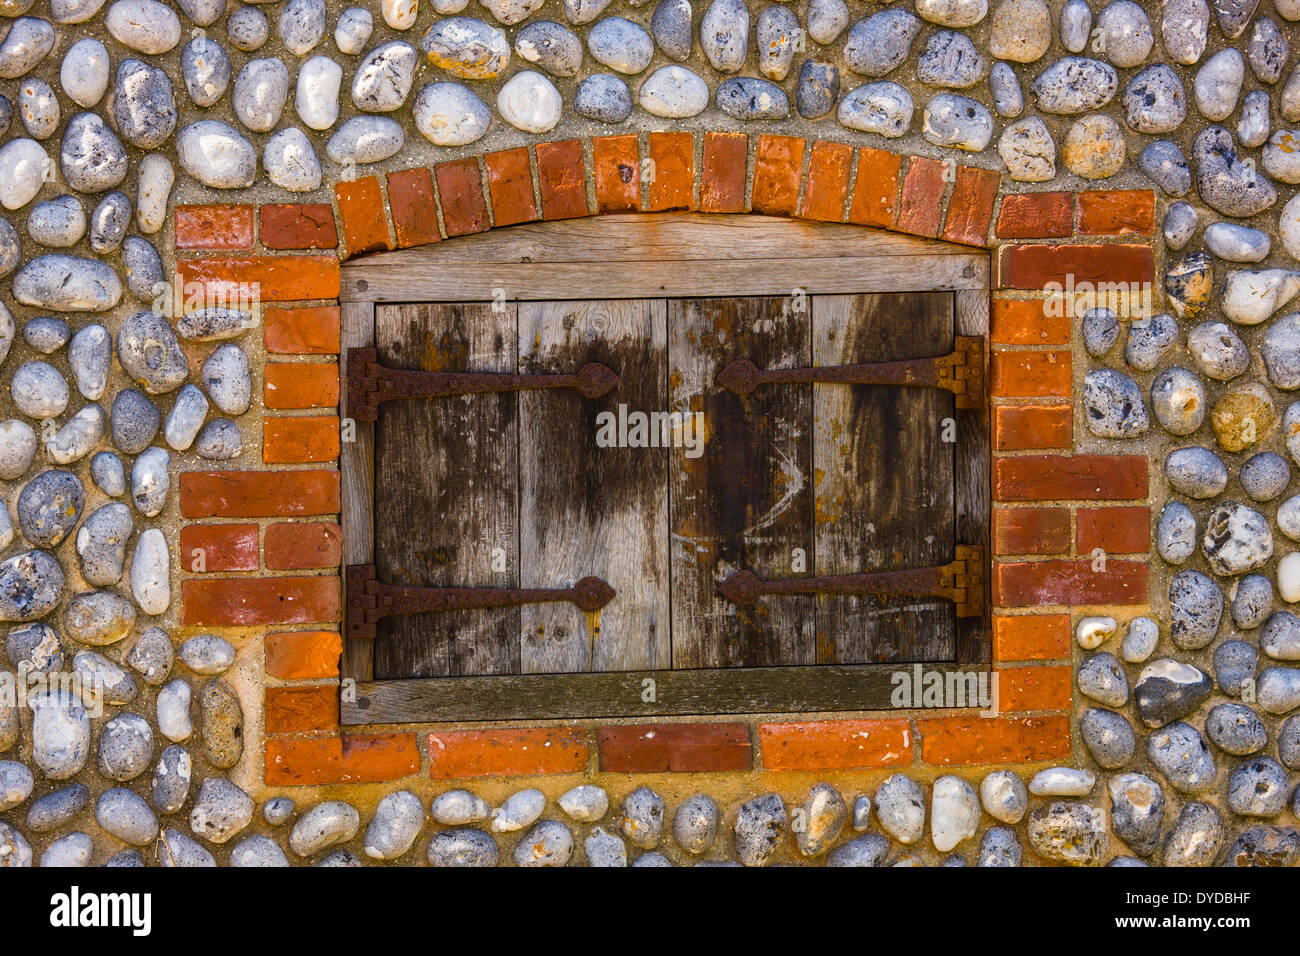 Shuttered window in brick and flint wall. - Stock Image